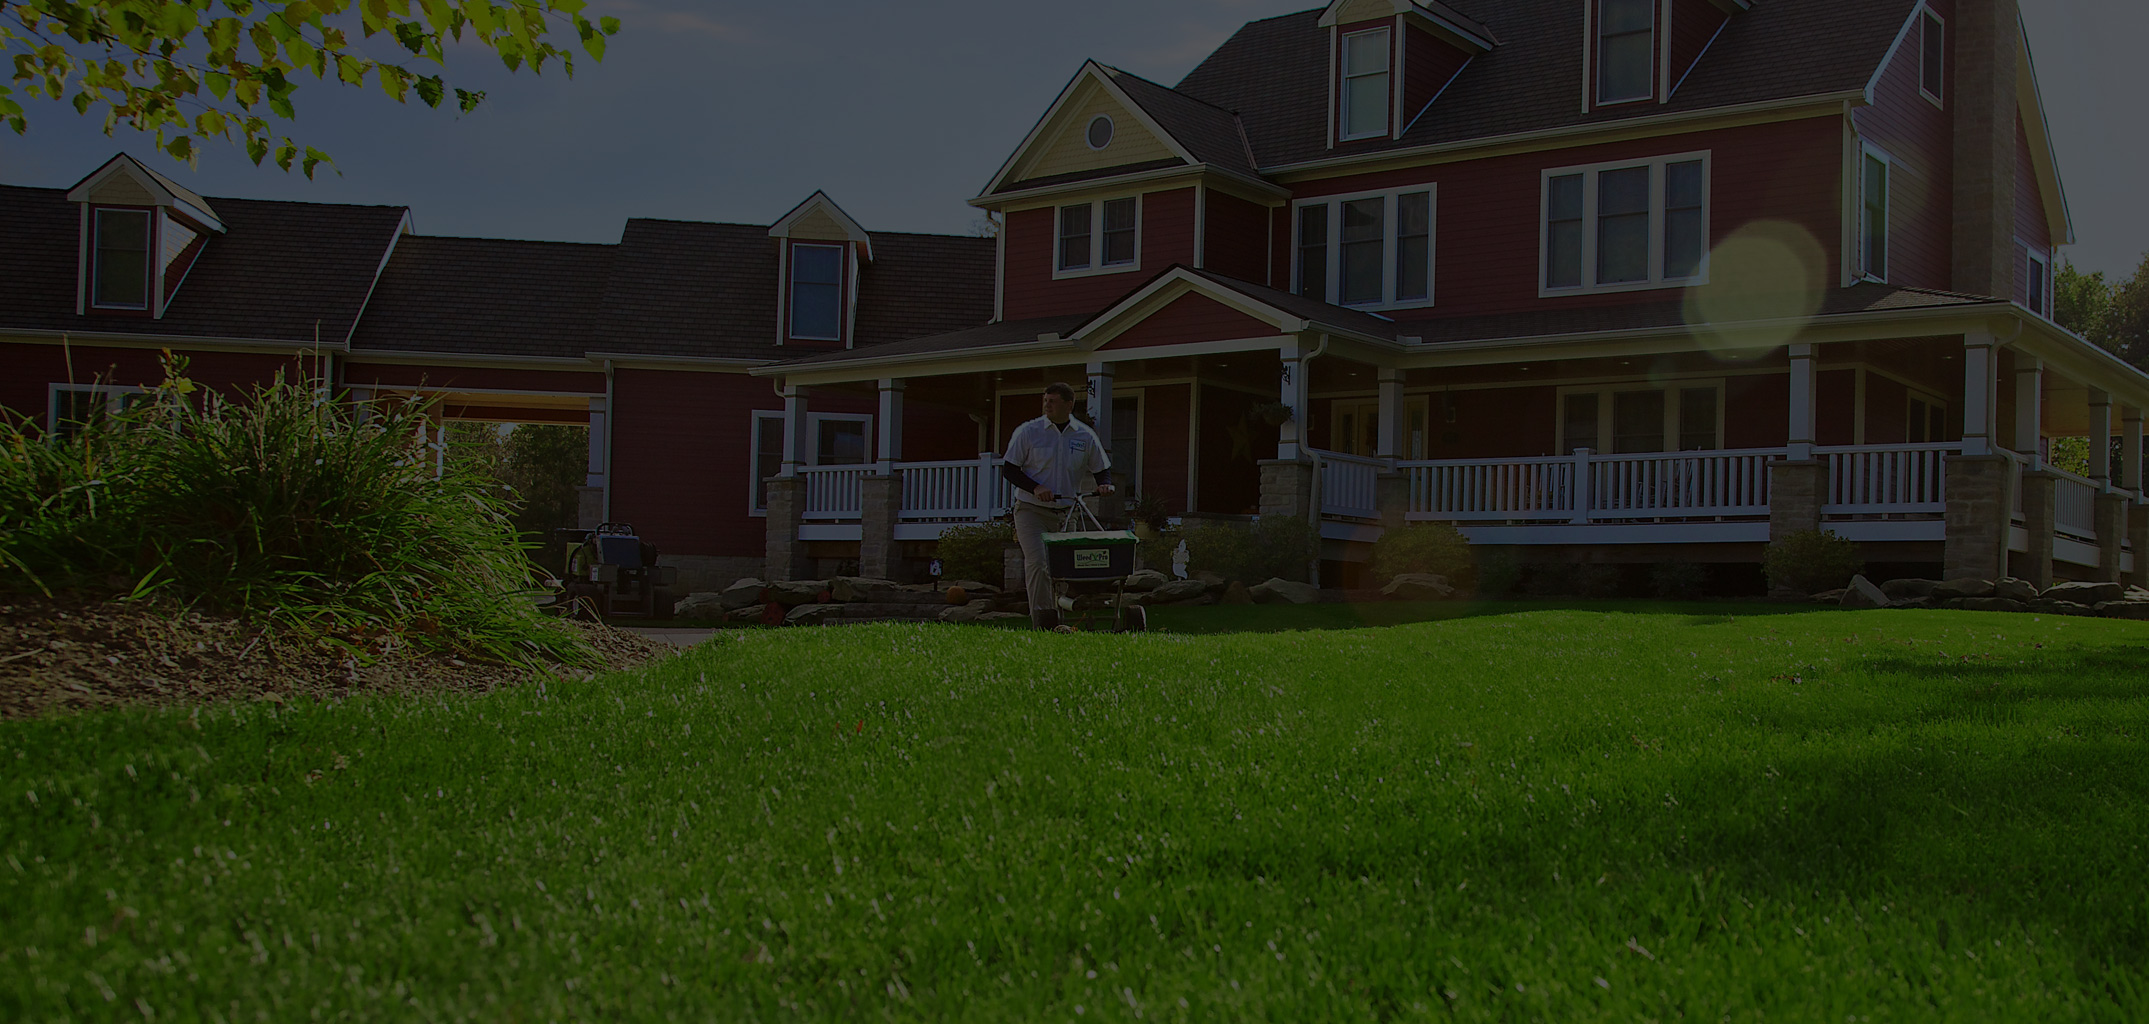 Cleveland and Columbus Lawn Care Services